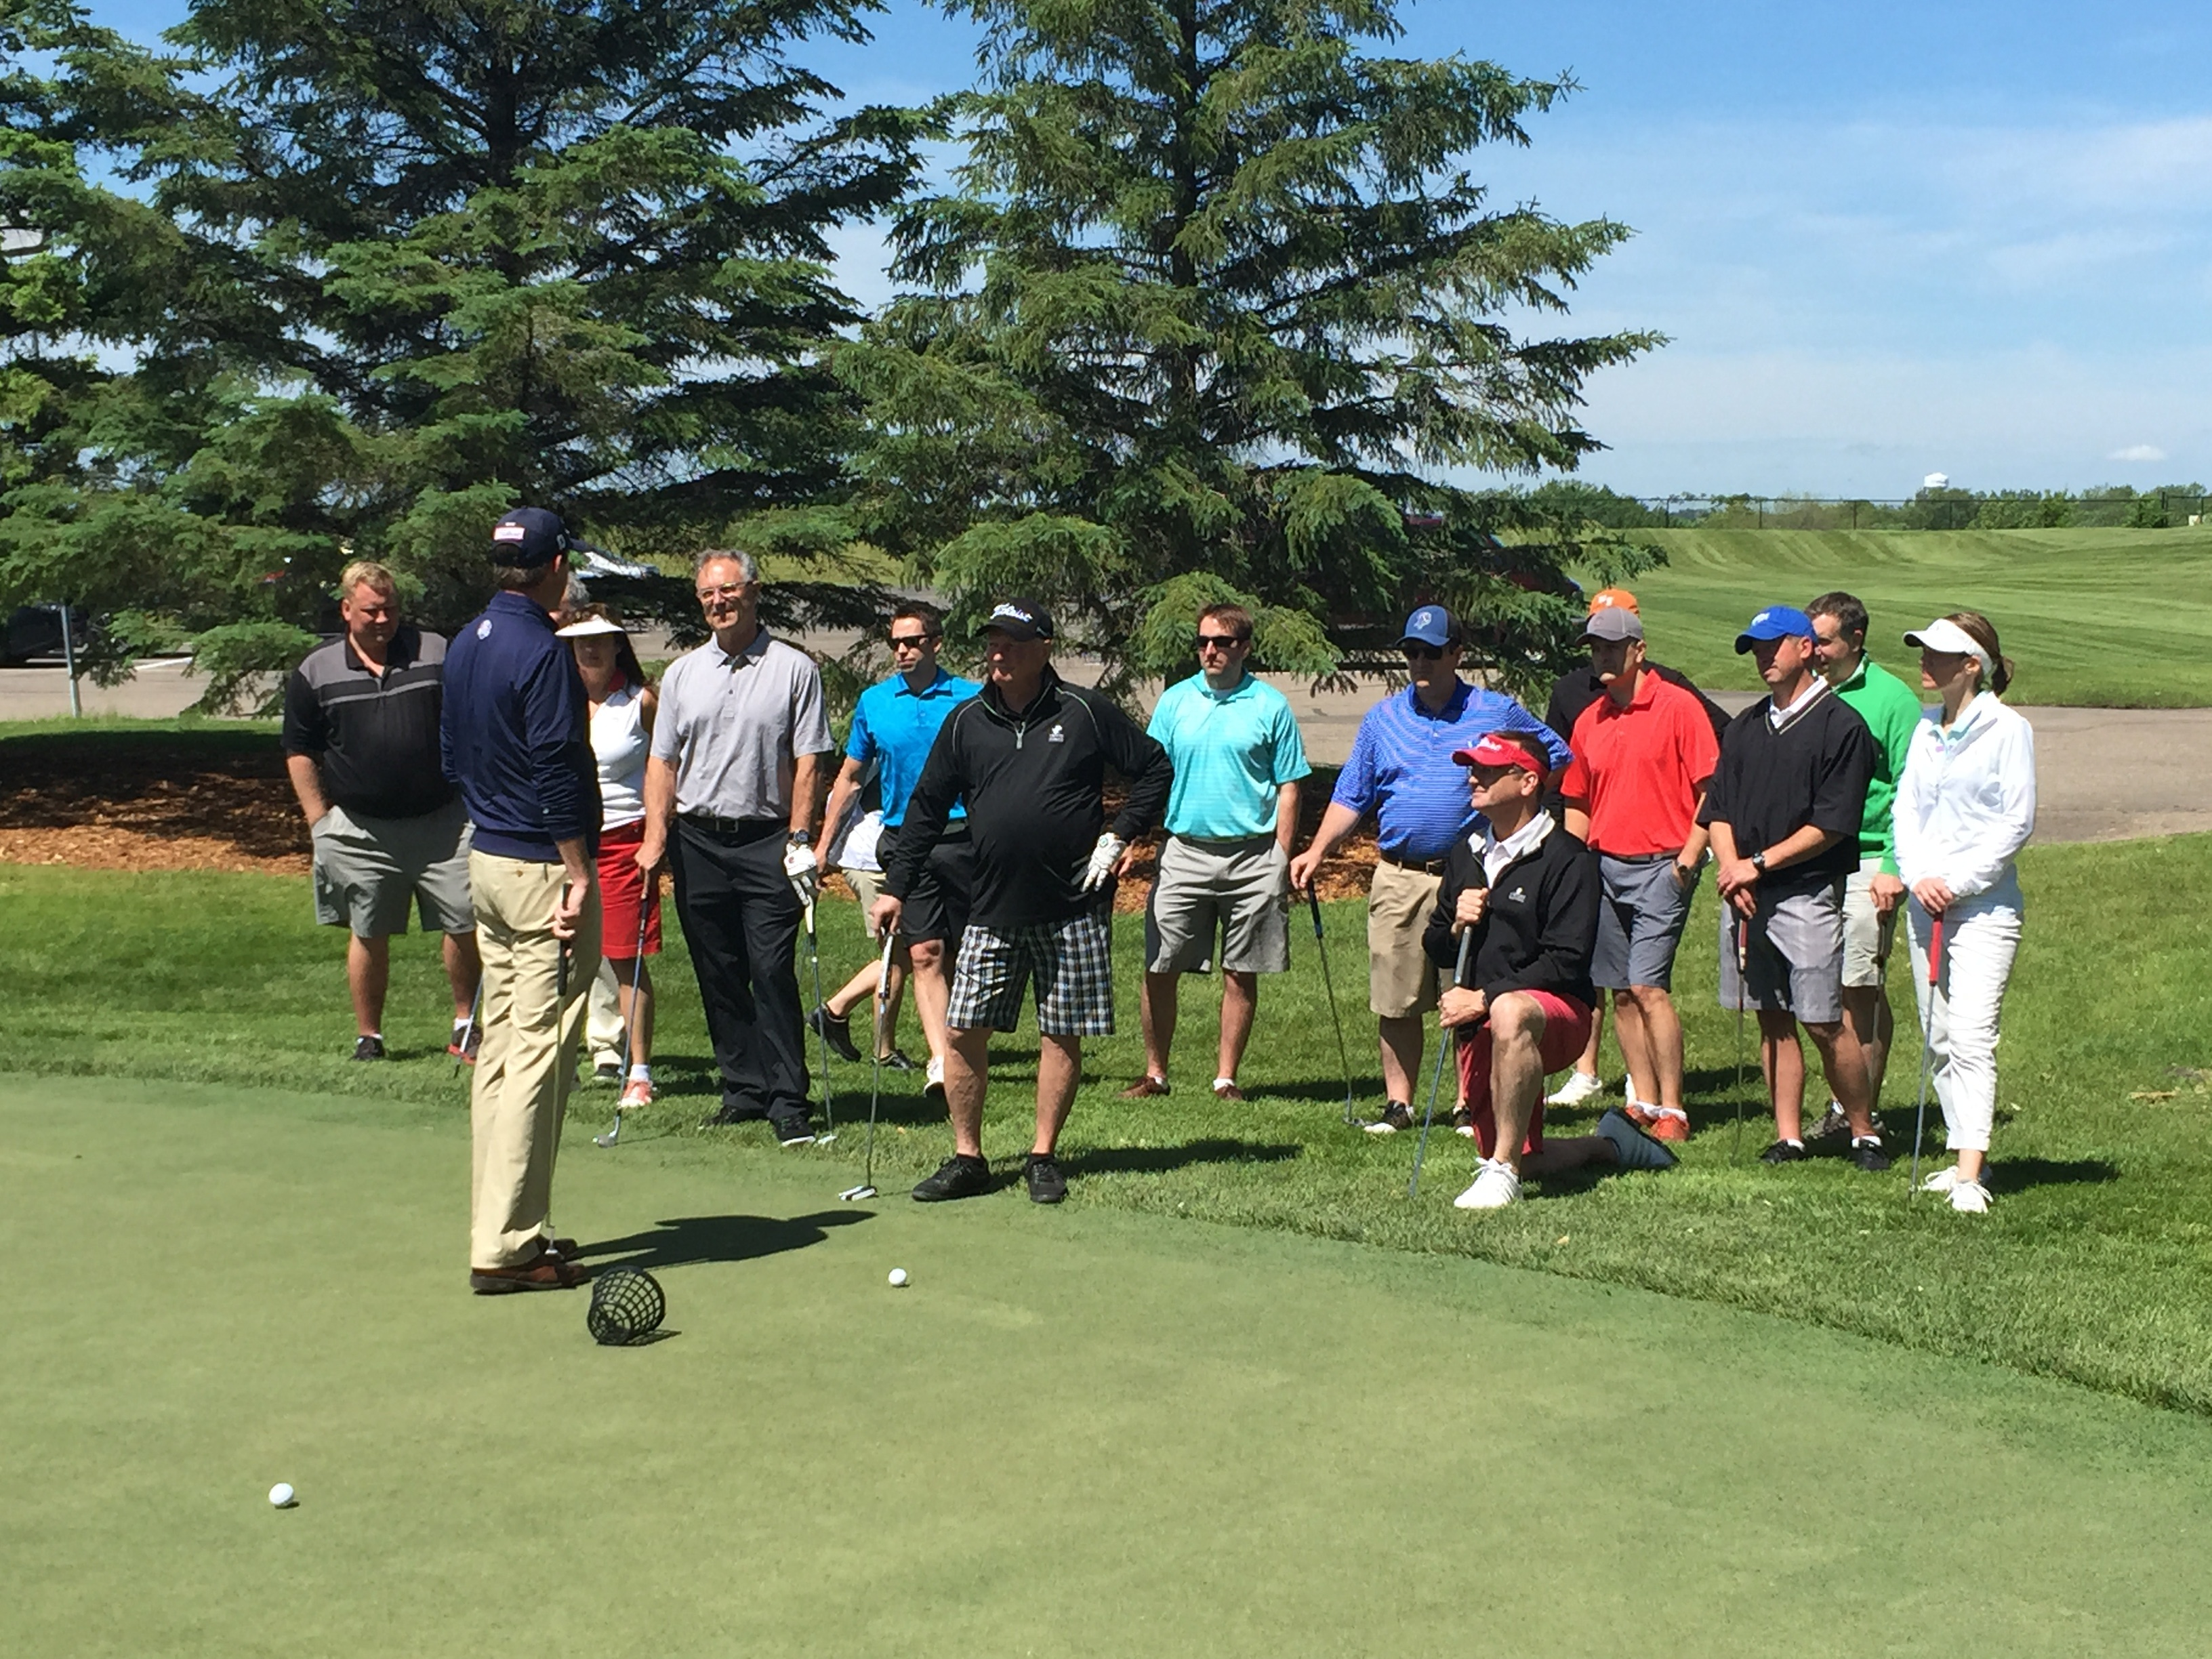 Golfers participating in a Short Game Clinic at a private golf tournament at Hazeltine National Golf Club